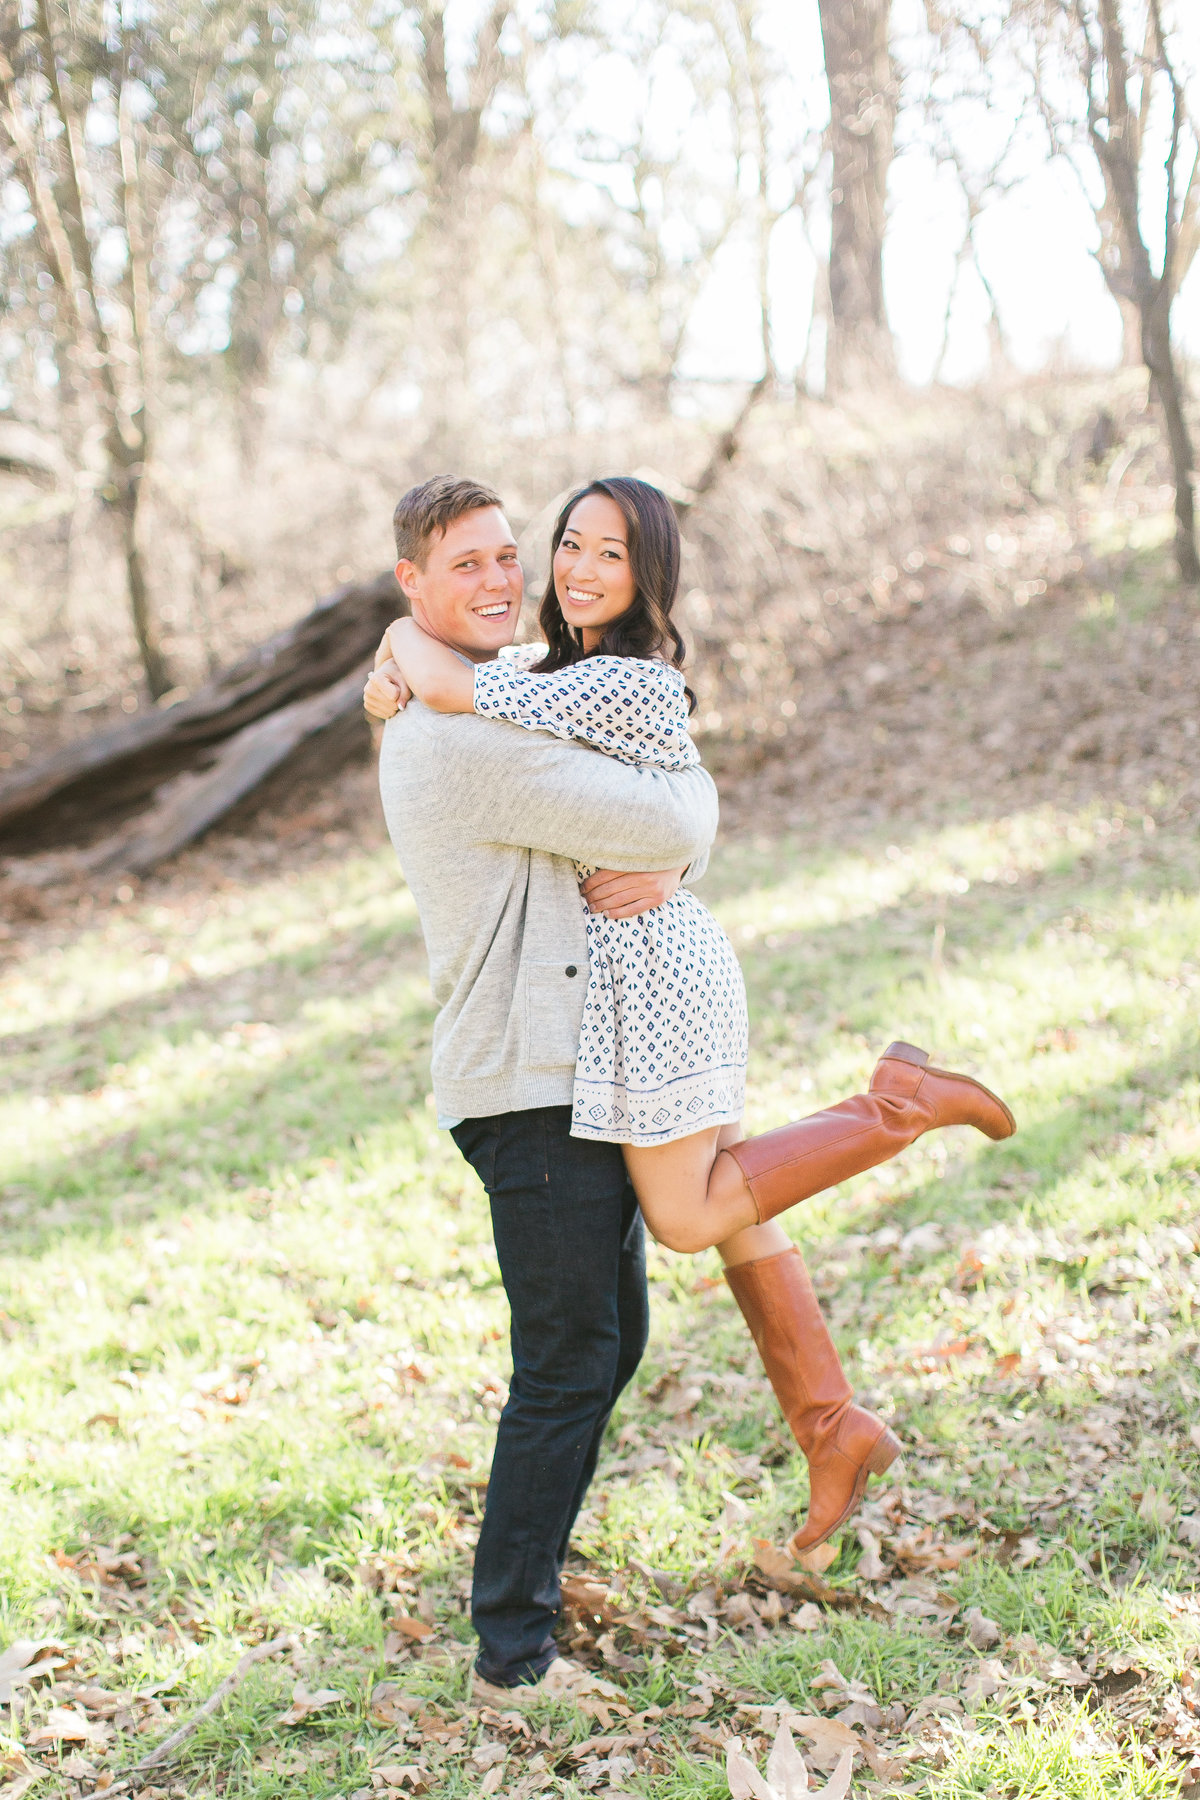 Jenny & Andrew Winter Engagement on Film  {Destination Film Wedding Photographer}  | Katie Schoepflin Photography07